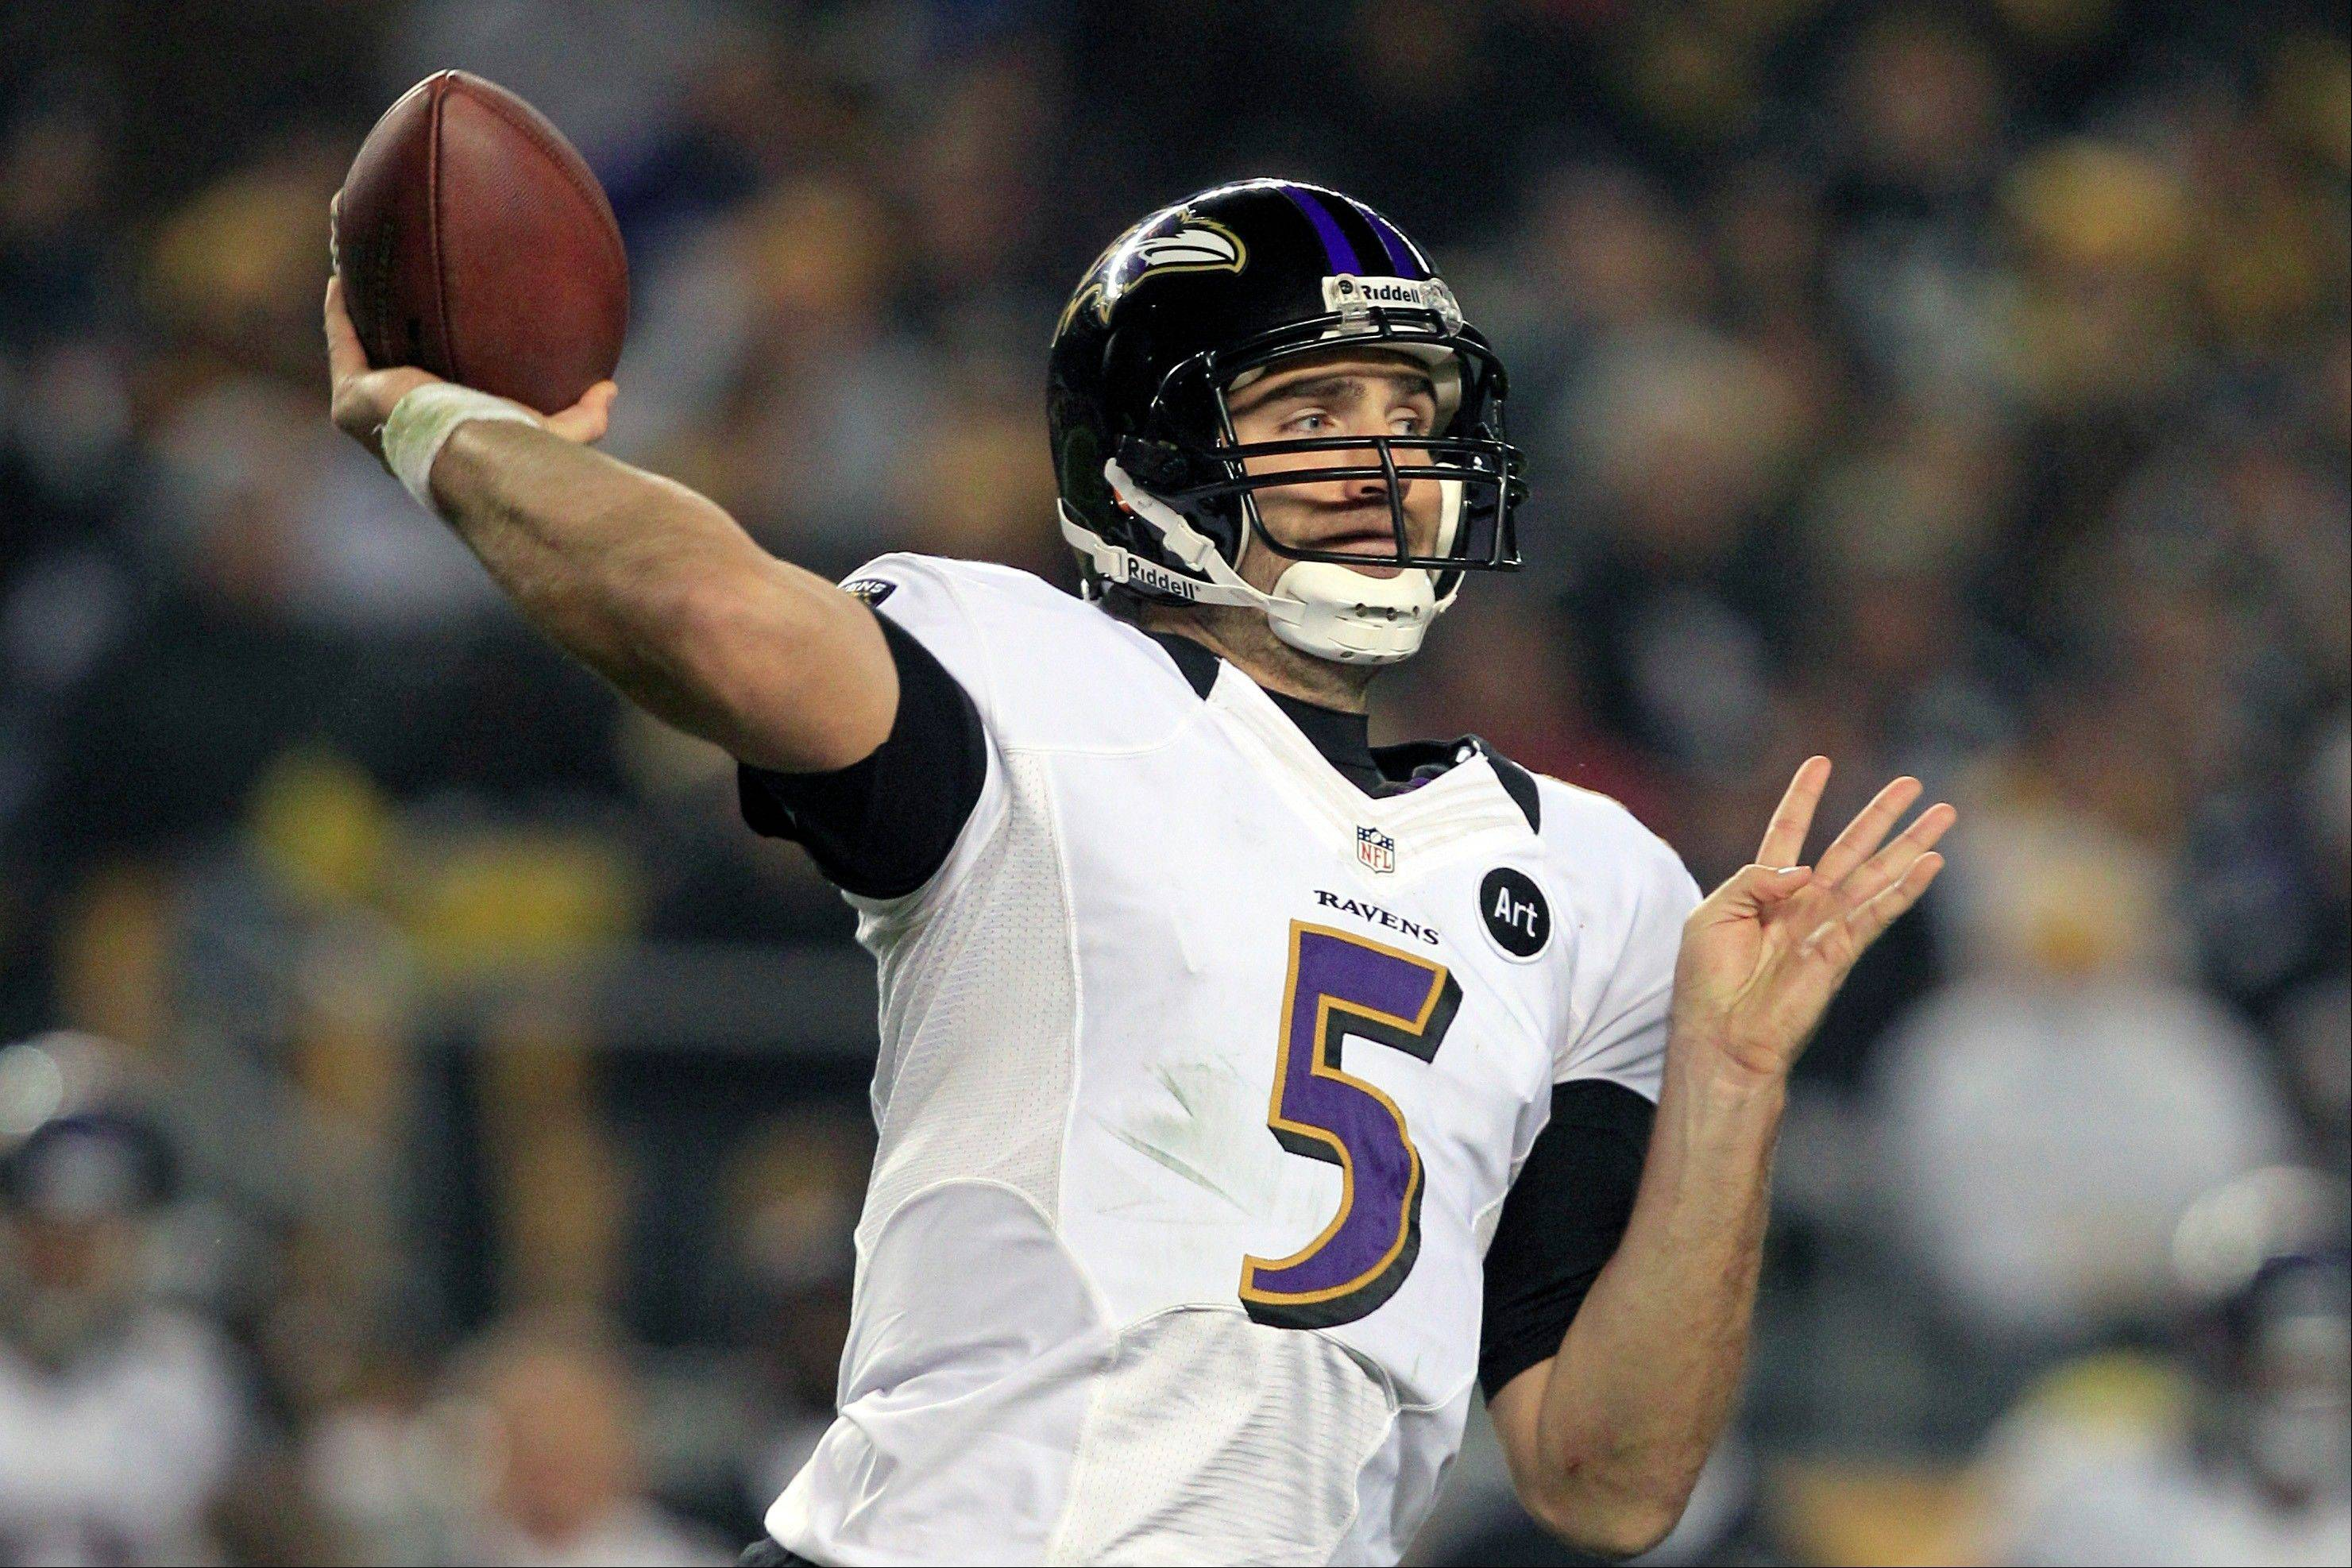 Baltimore Ravens quarterback Joe Flacco (5) passes in the second quarter against the Pittsburgh Steelers in Pittsburgh, Sunday. The Ravens won 13-10.